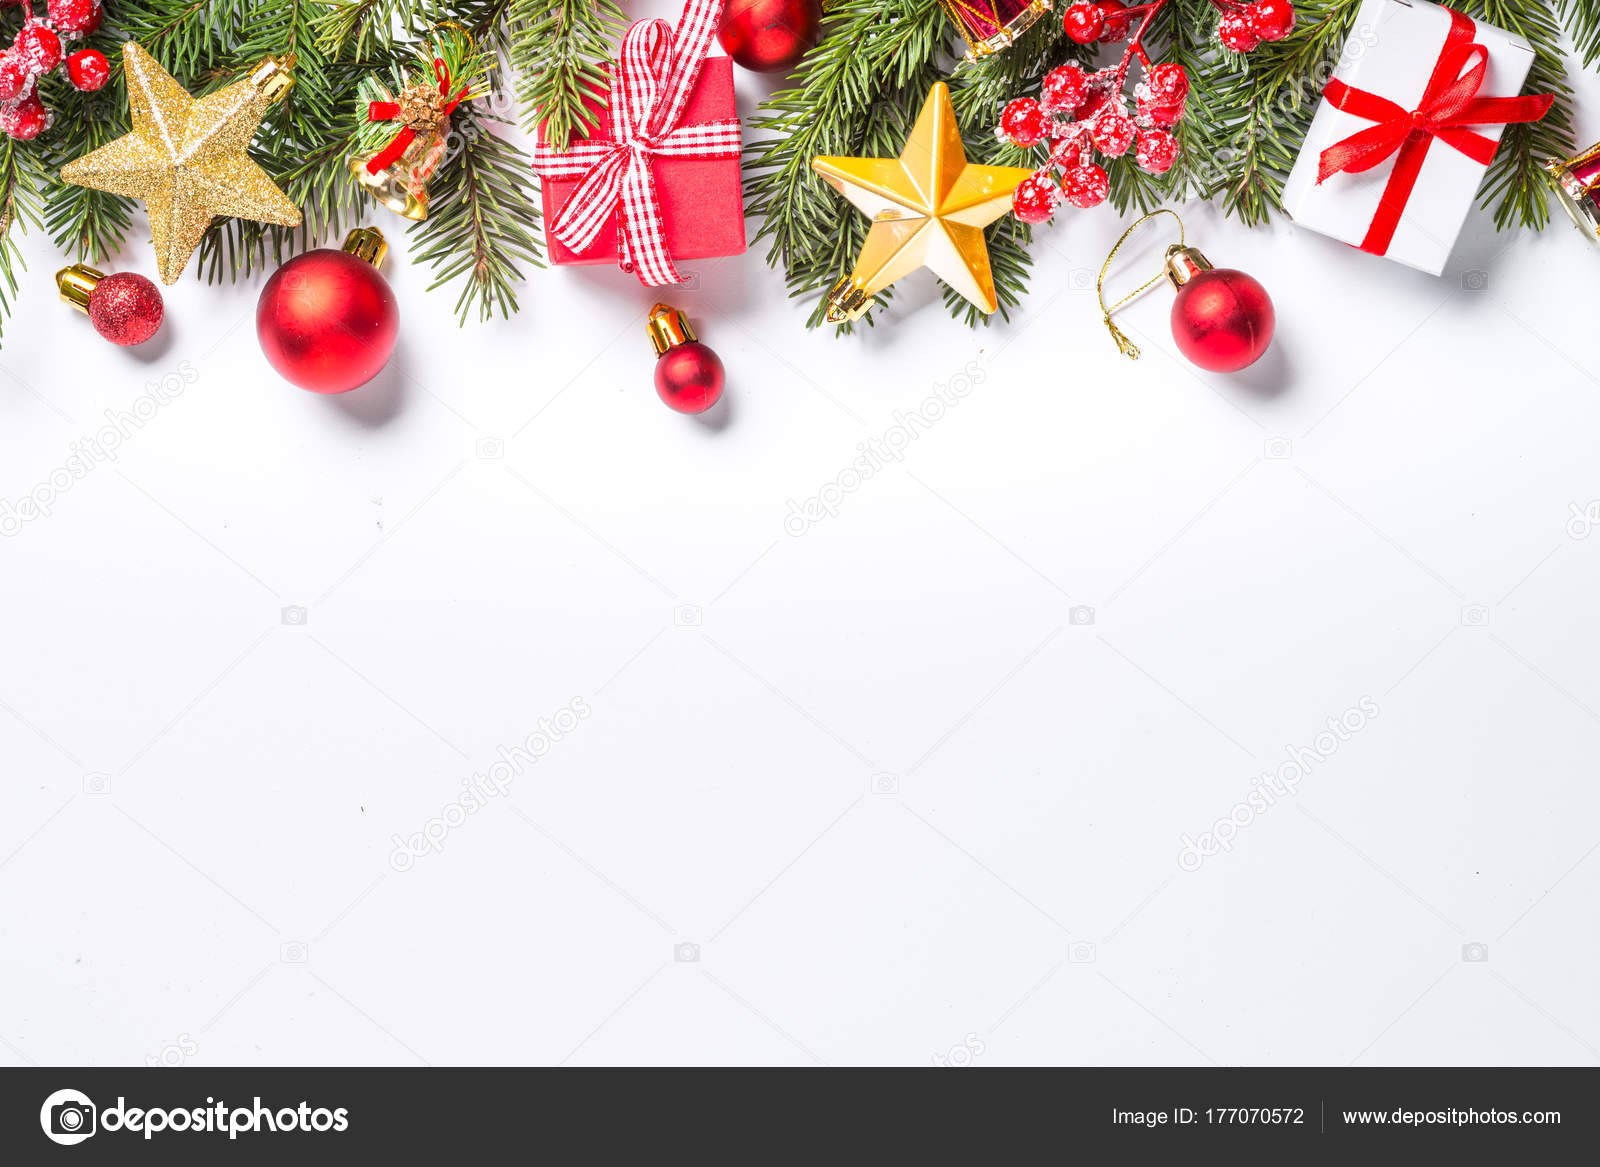 4ac913863755 Christmas background. Red and gold christmas decorations and present box  with snow fir tree branch on white background isolated. Top view with copy  space.